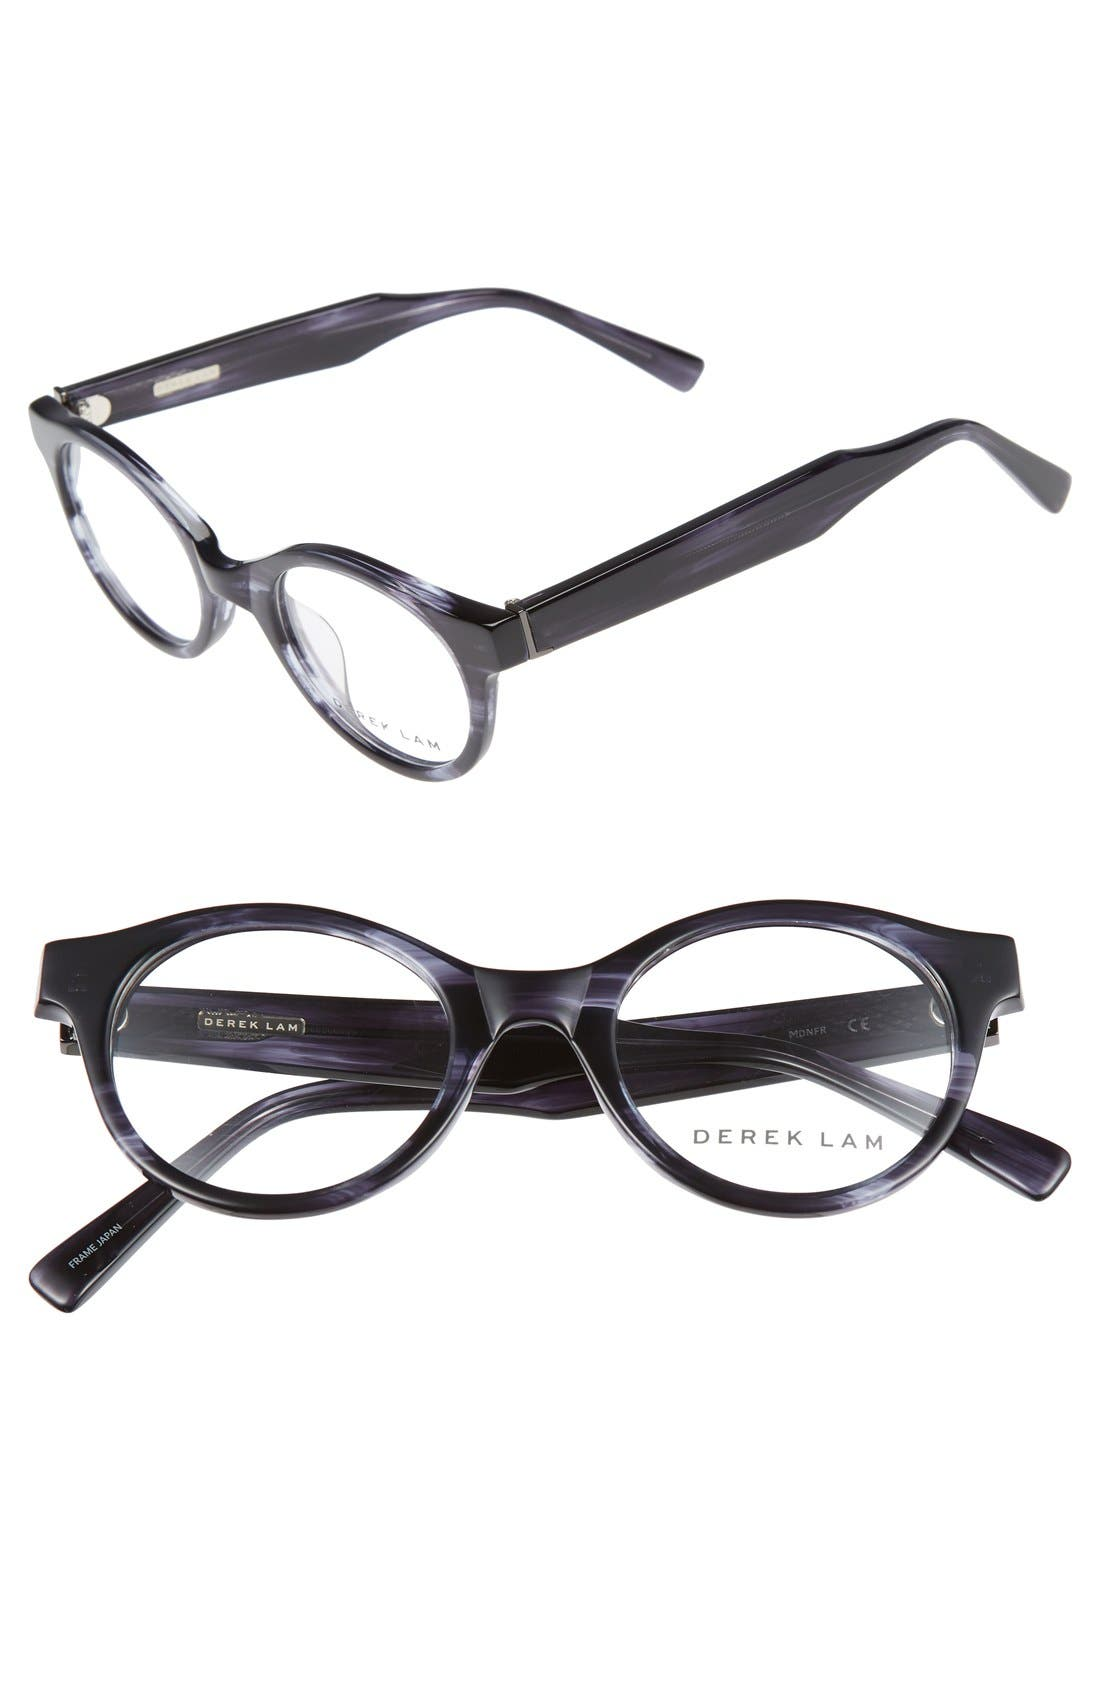 45mm Optical Glasses,                             Main thumbnail 1, color,                             MIDNIGHT FEATHER